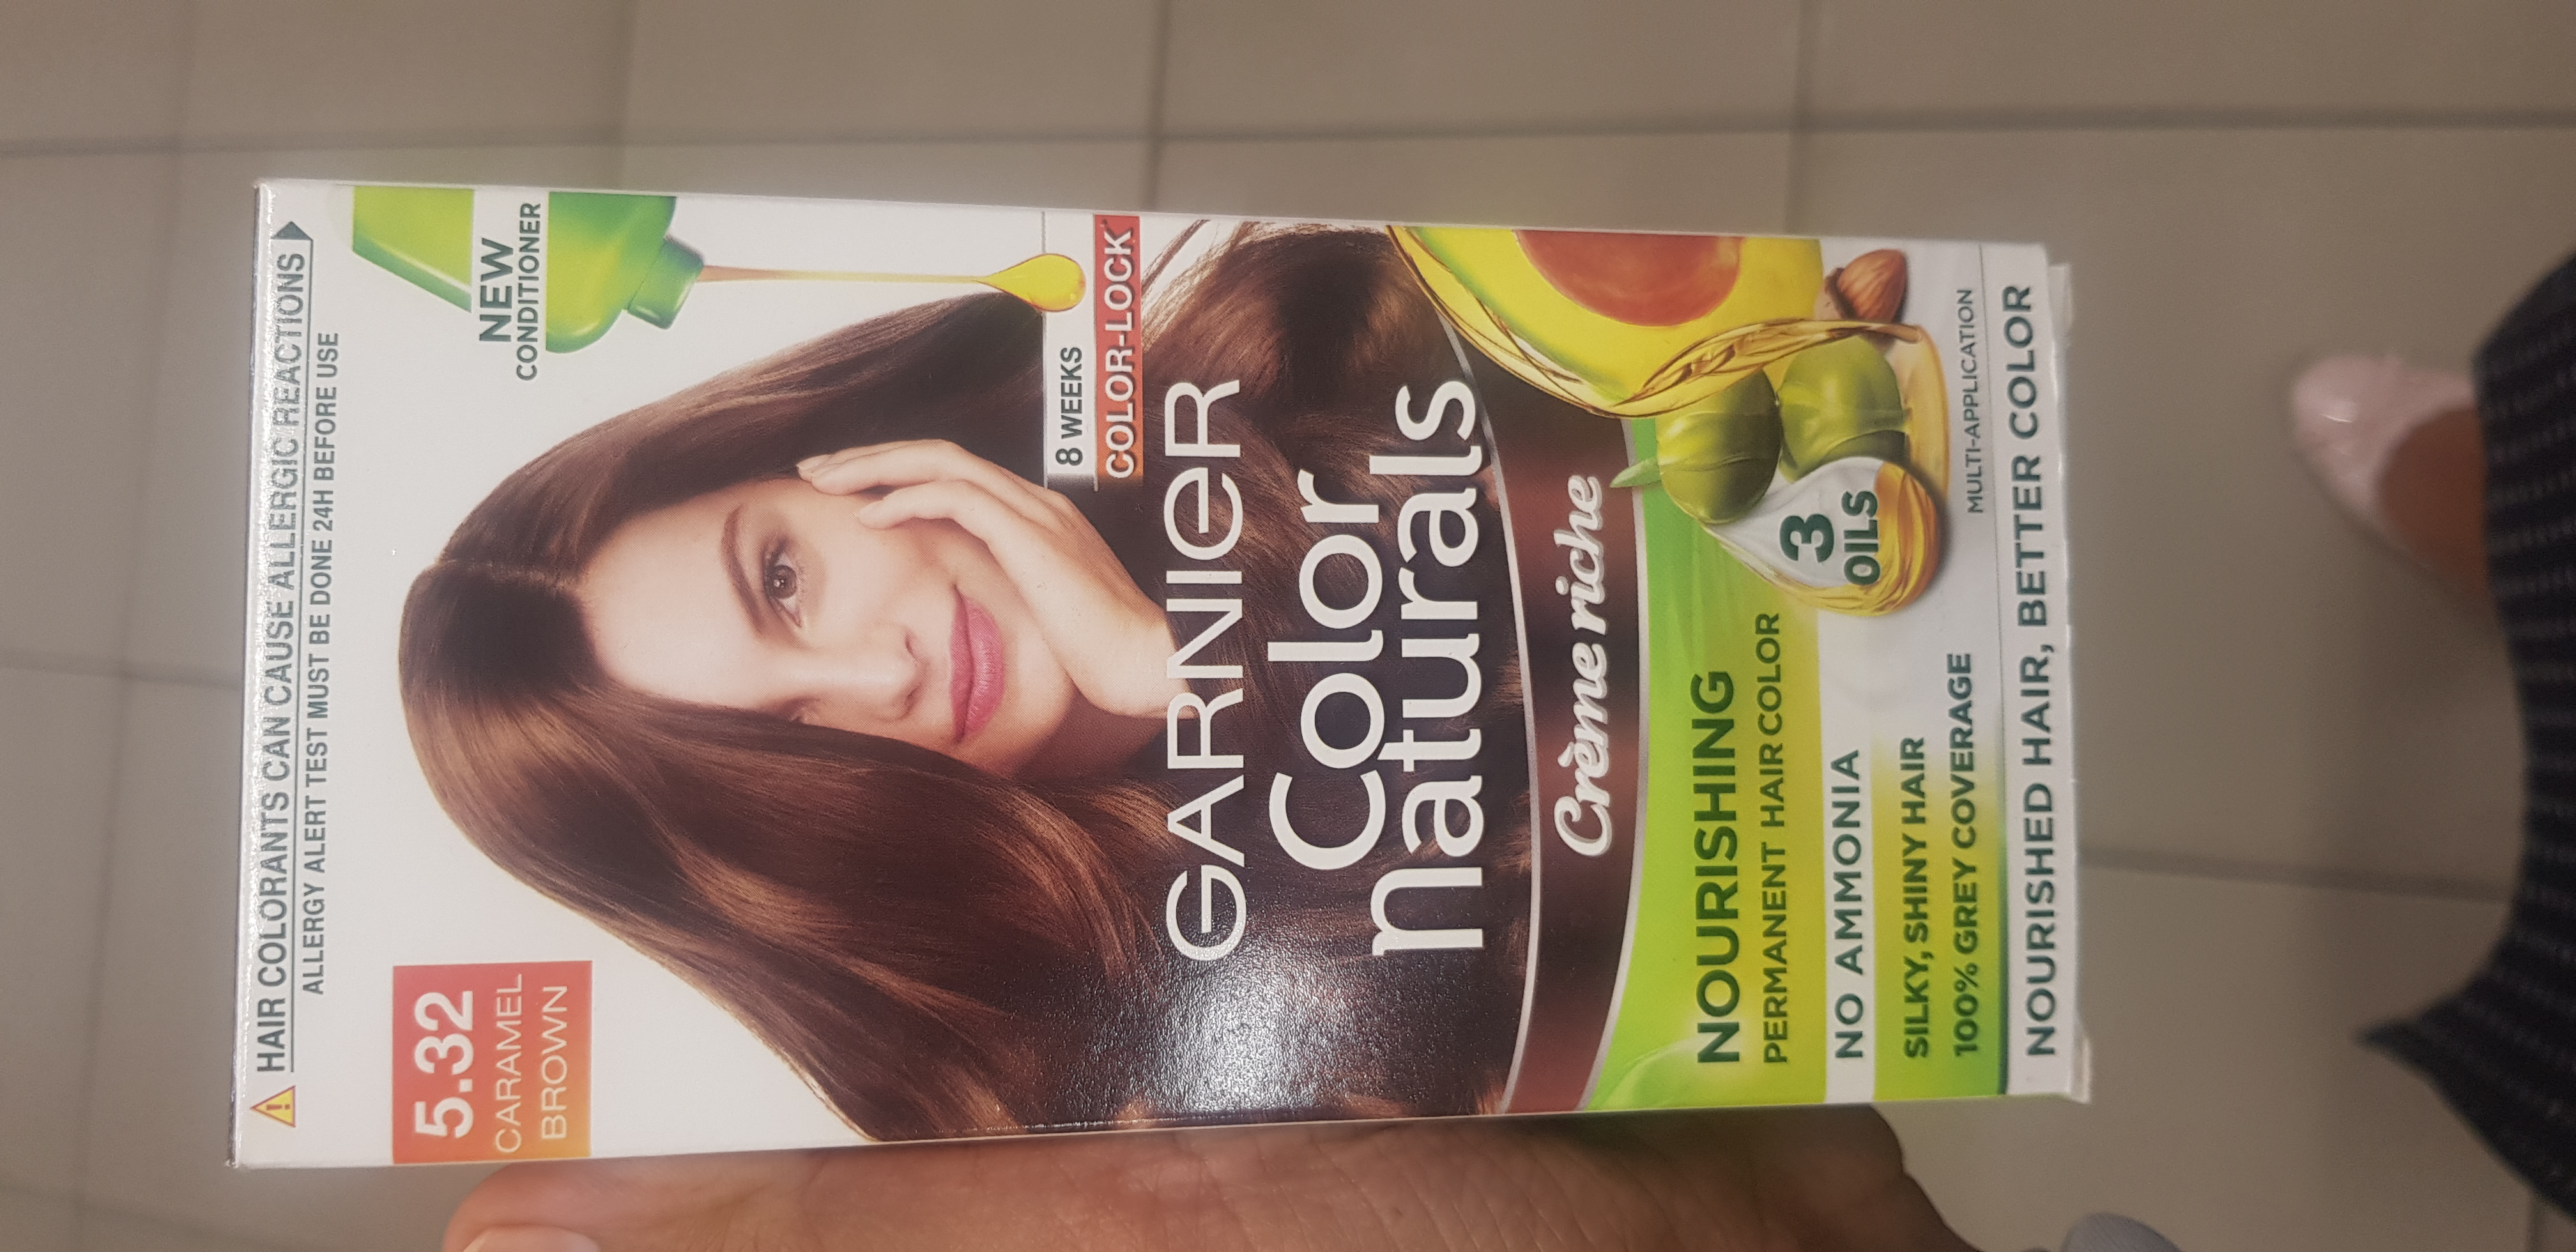 Garnier Color Naturals Creme Hair Color-Not satisfied-By avyuktha